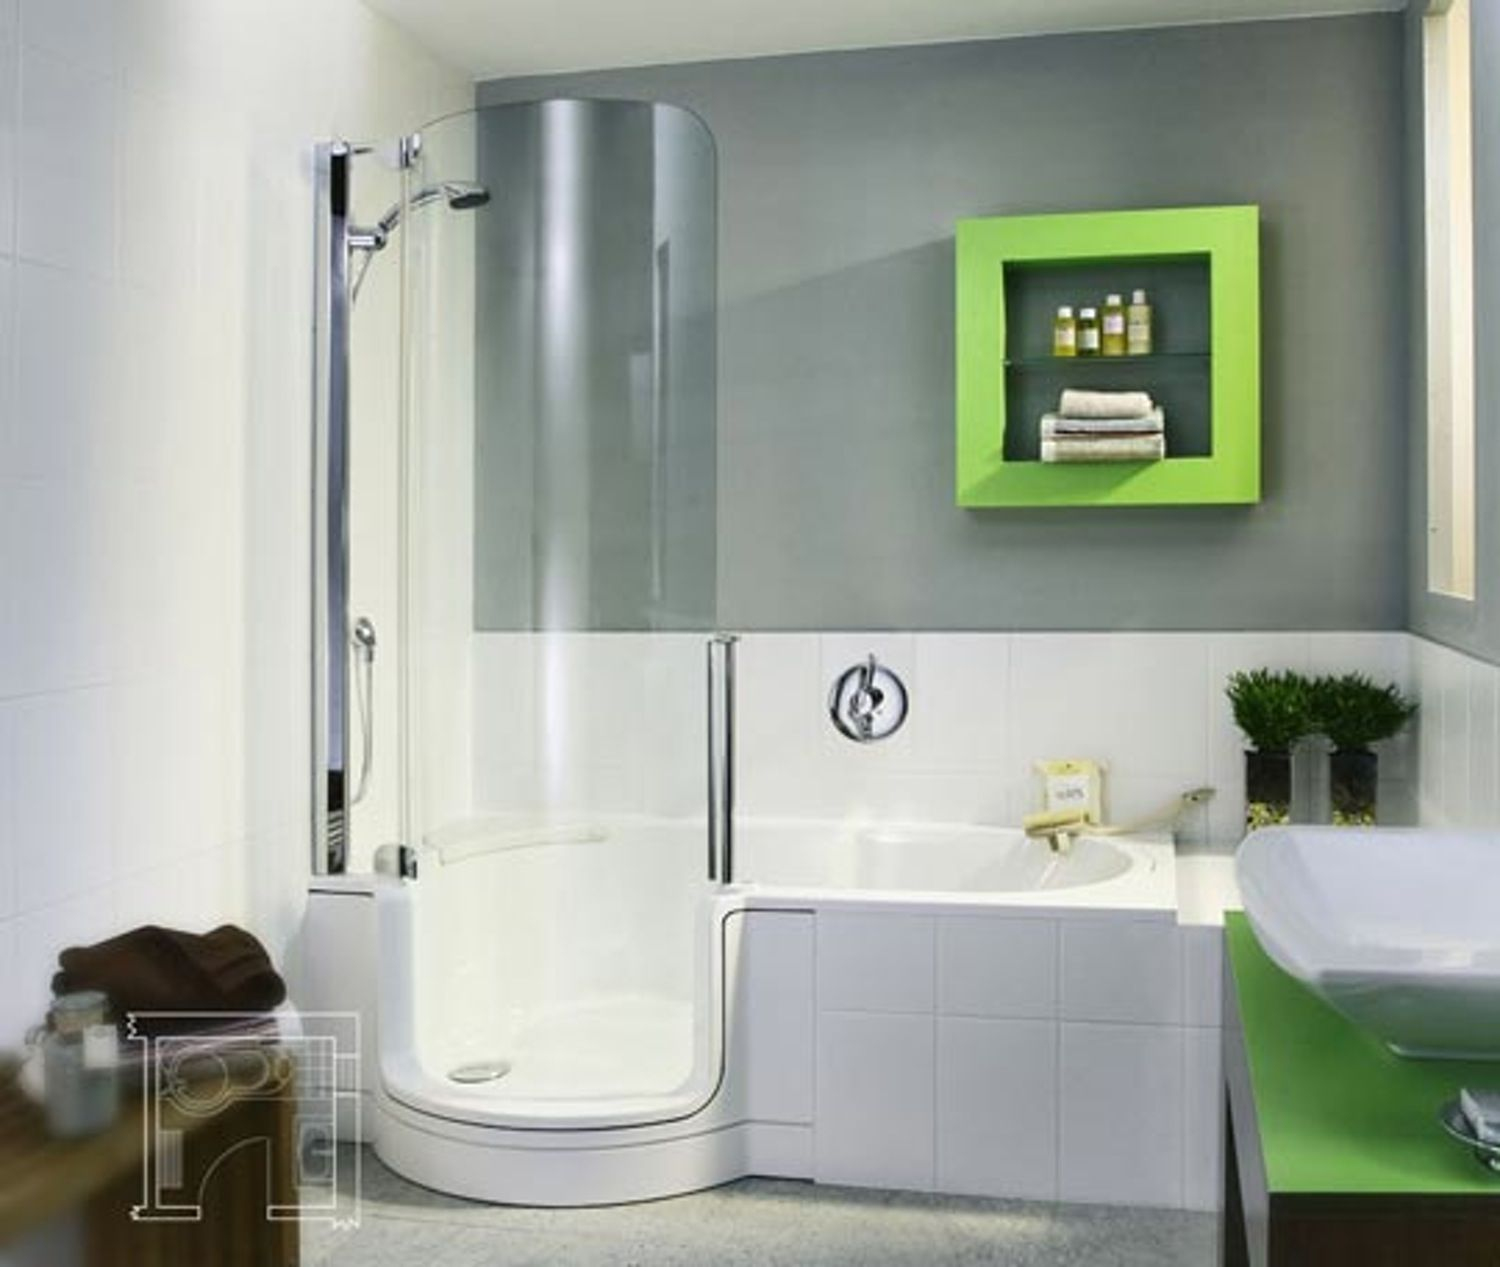 Twinline Tub Shower Combo | Tub shower combo, Tubs and Bathtubs